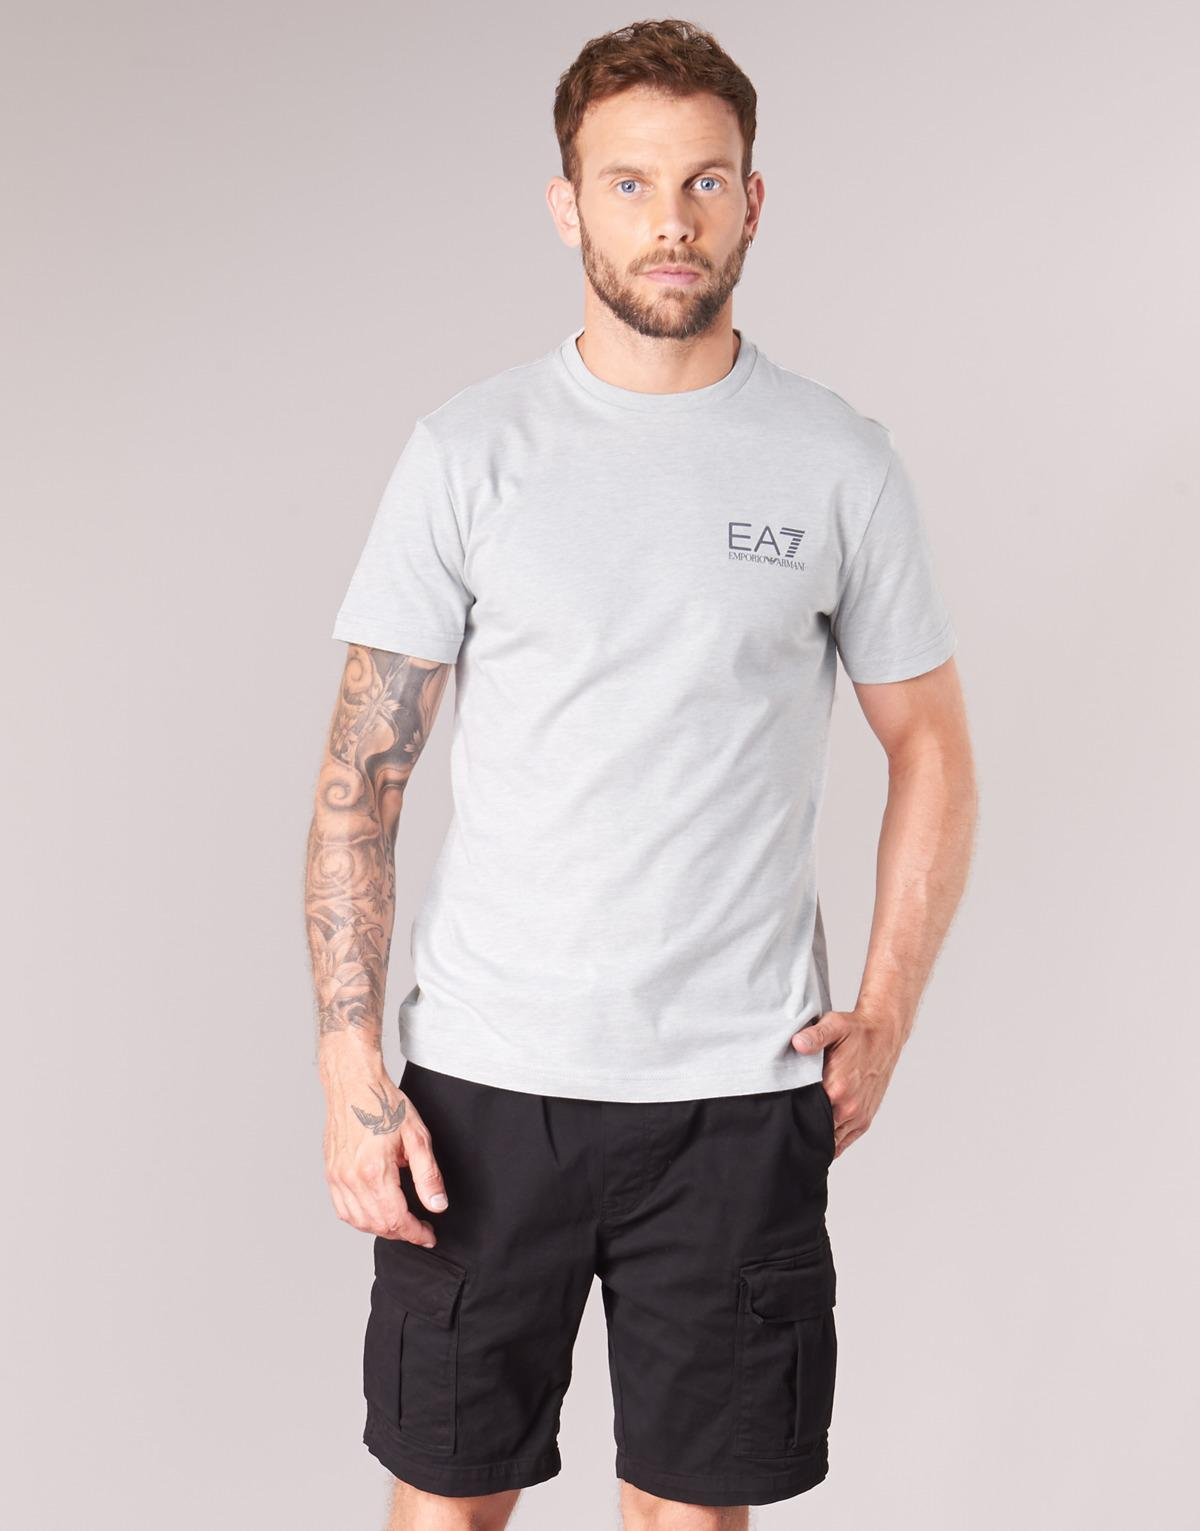 e775668a6cd Ea7 Train Core Identity 3zpt51 Men s T Shirt In Grey in Gray for Men - Lyst